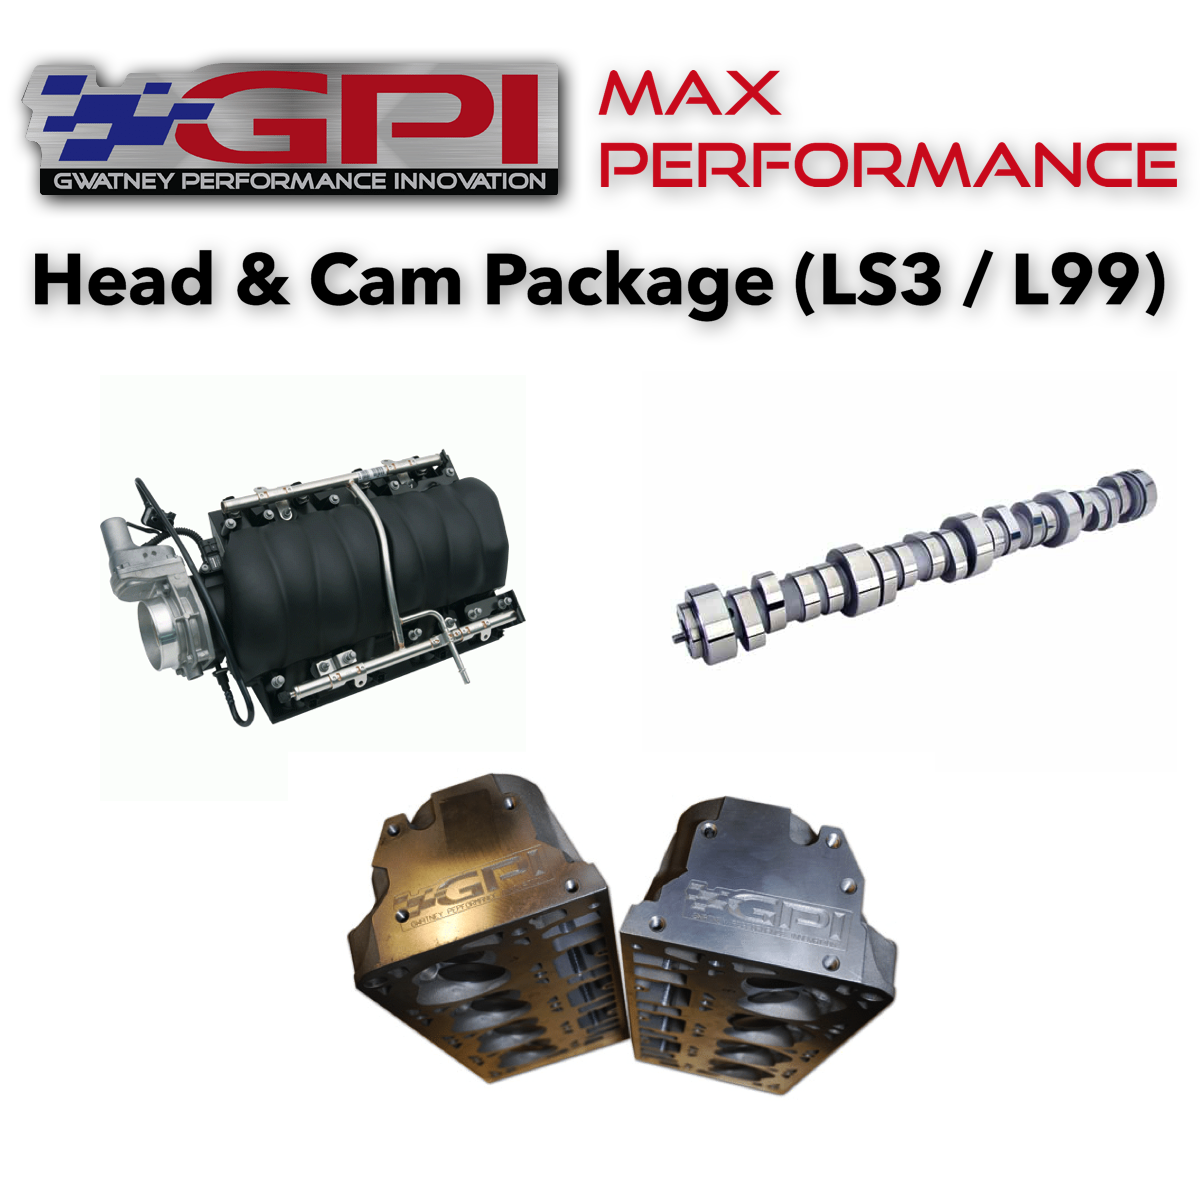 MAX Performance Head & Cam Package (LS3 / L99